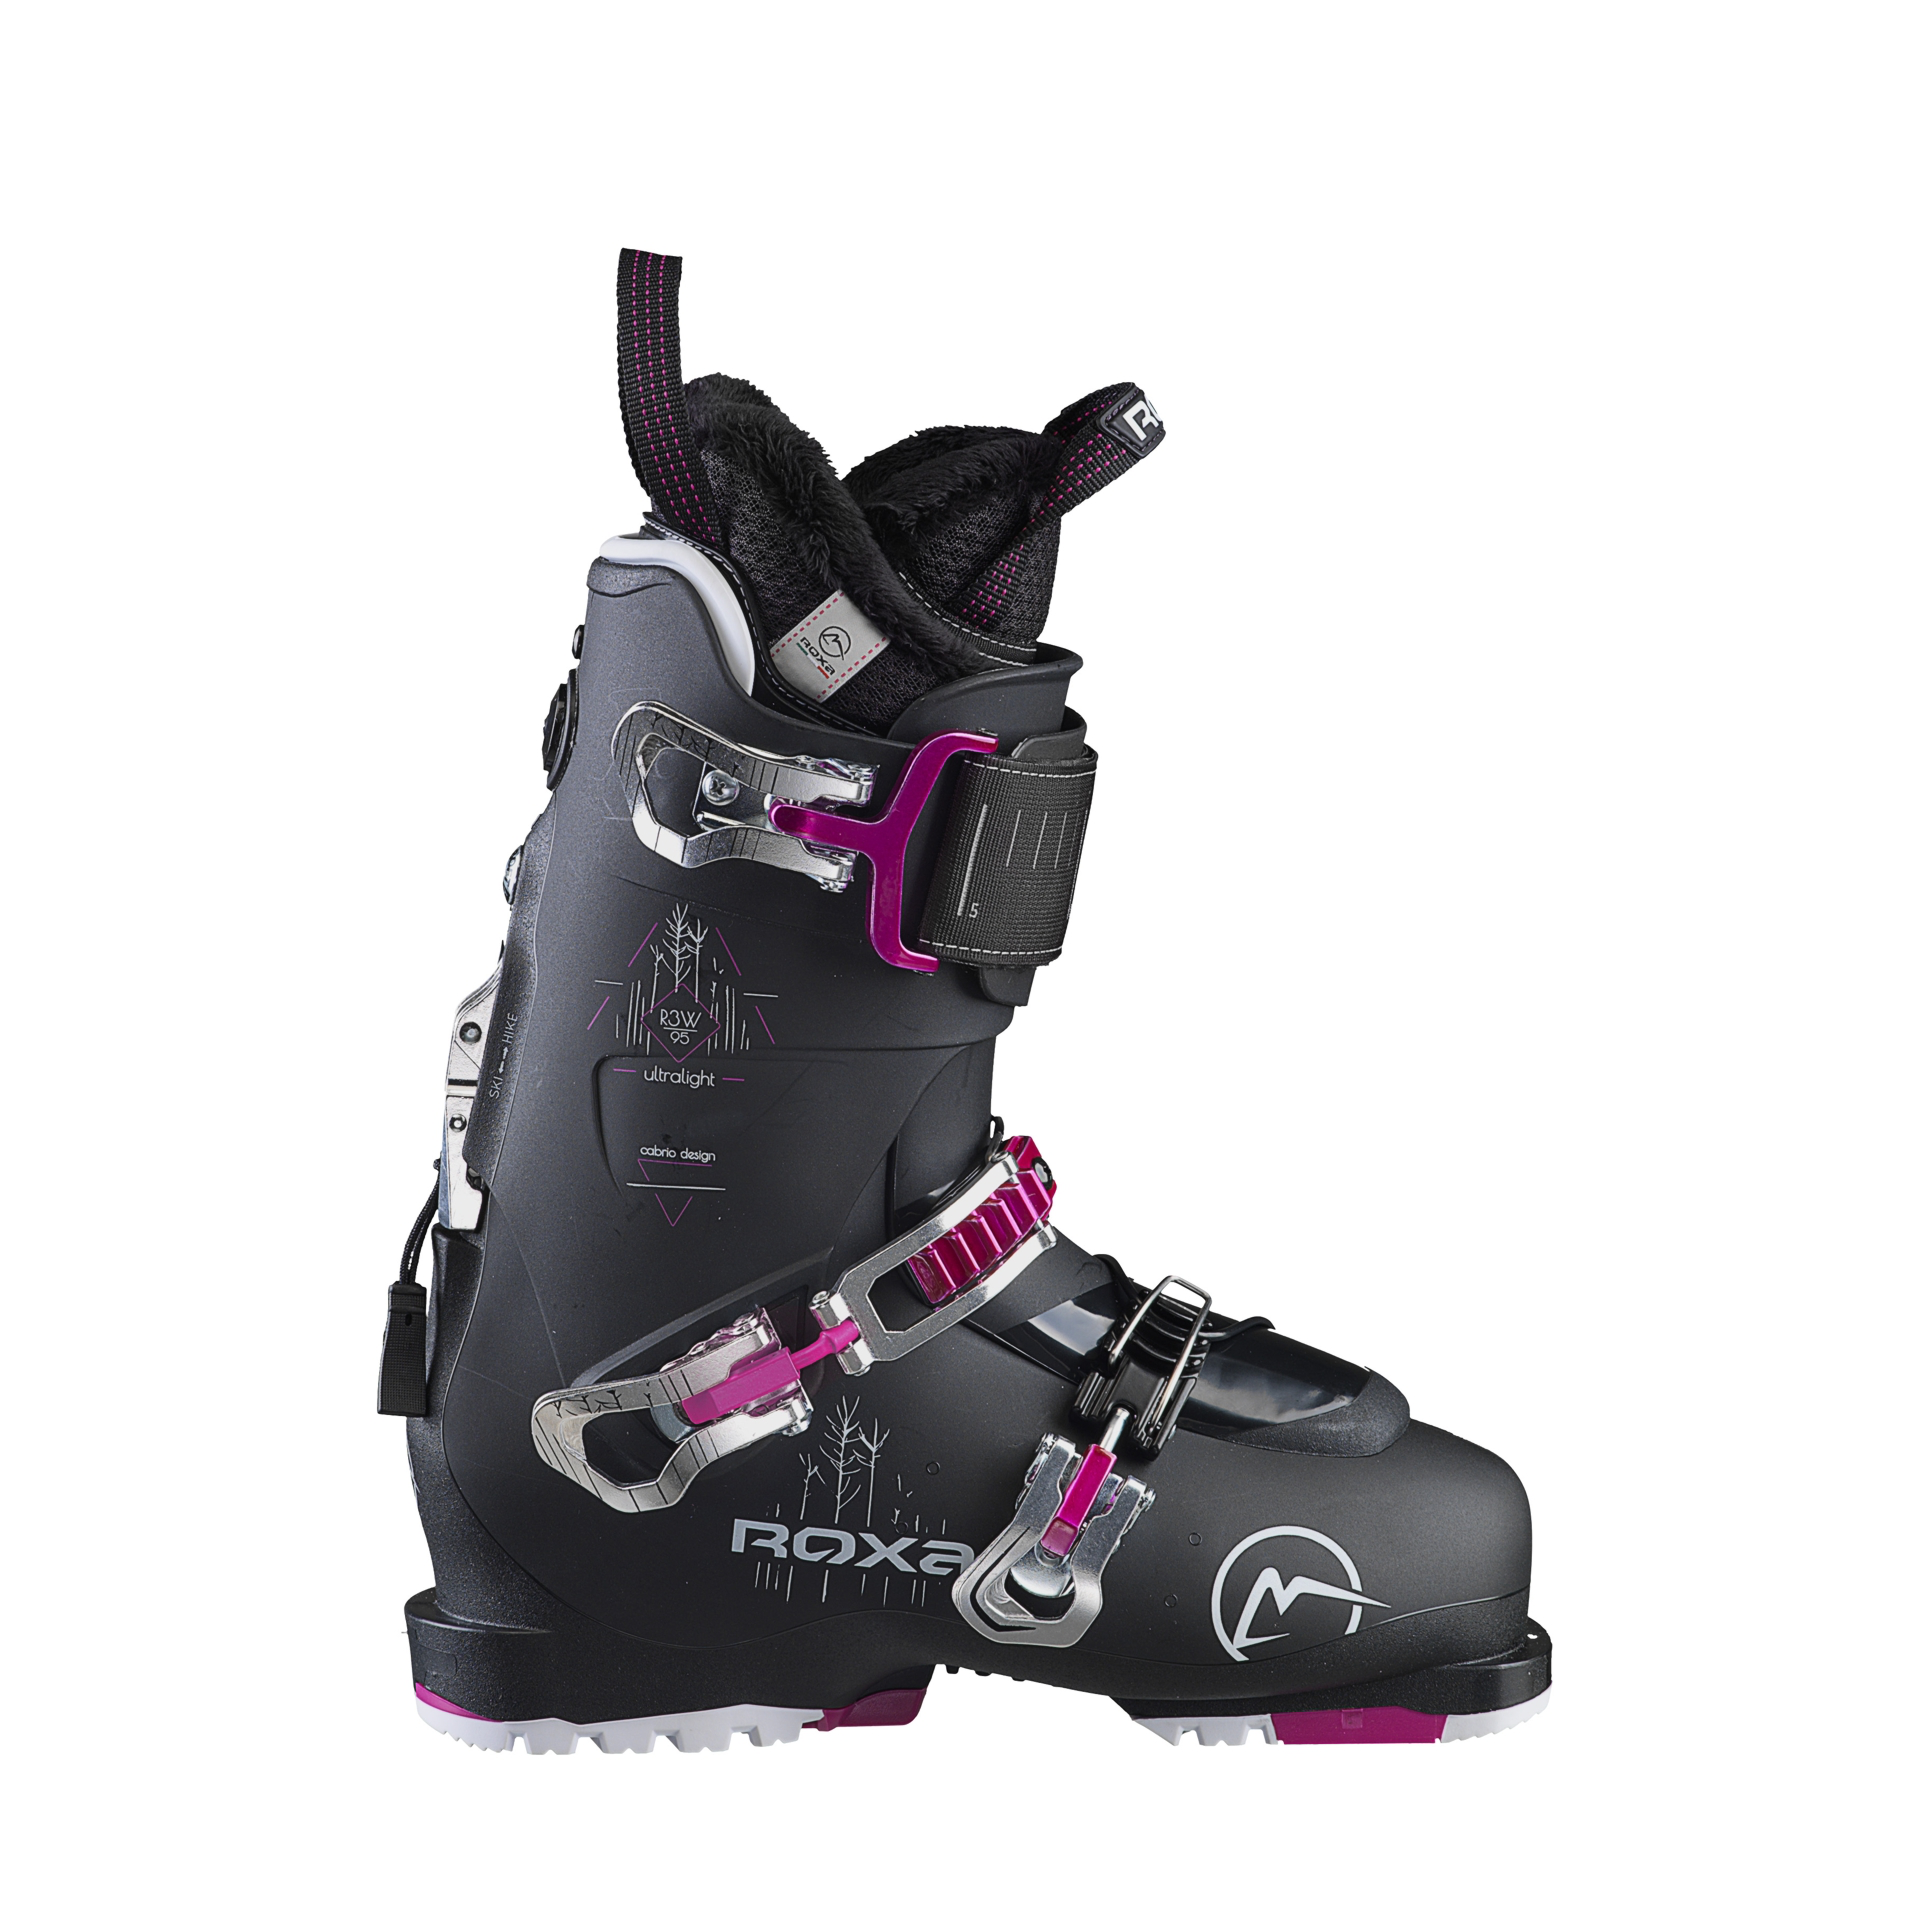 Women's Roxa R3 W 95 IR Boot